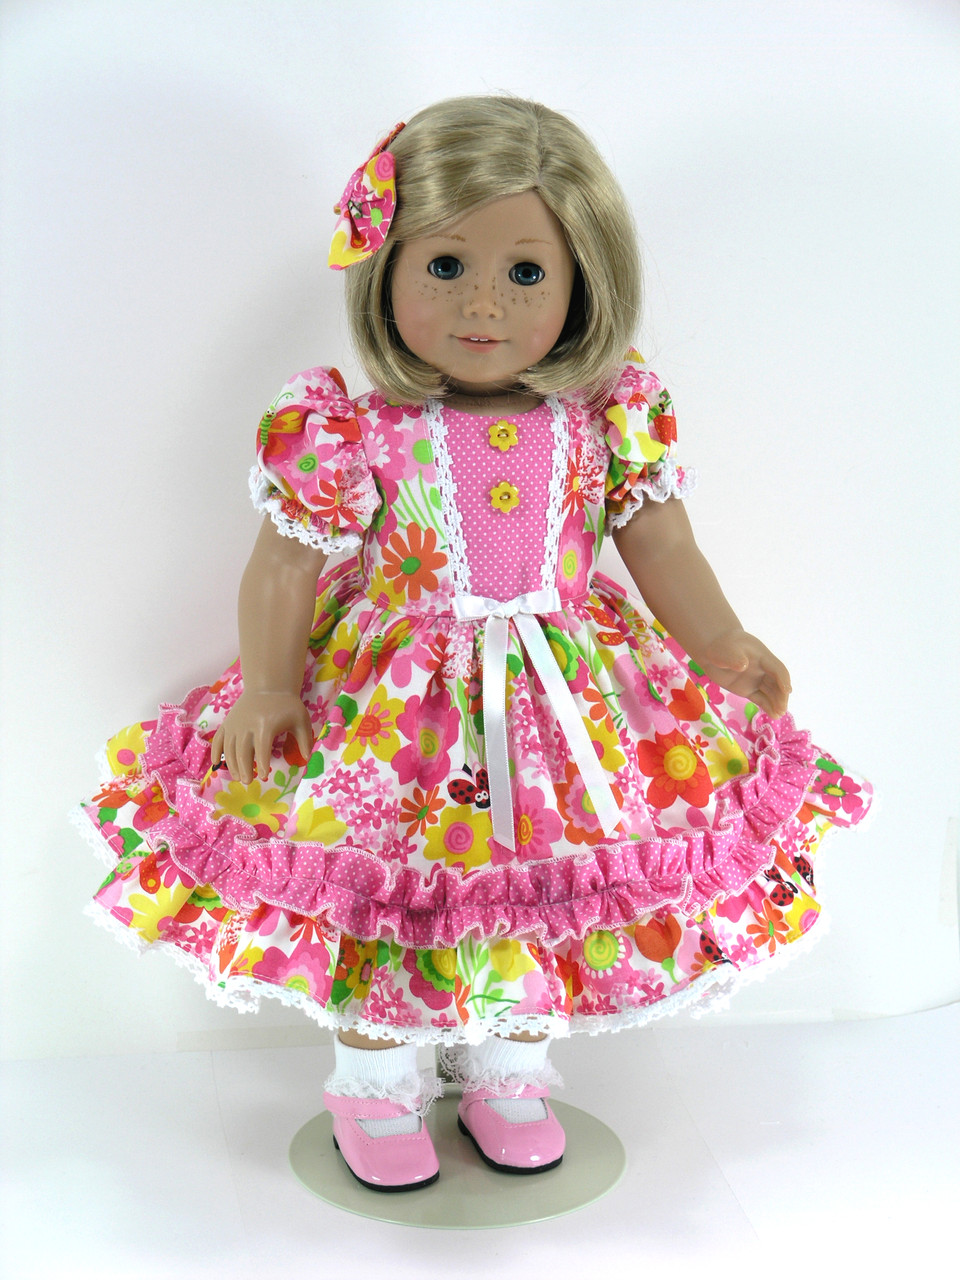 f733c2a57fd57 Doll Clothes Handmade for 18 inch American Girl - Dress, Pantaloons, Hair  Bow - Pink, Yellow Flowers; Pink Dot